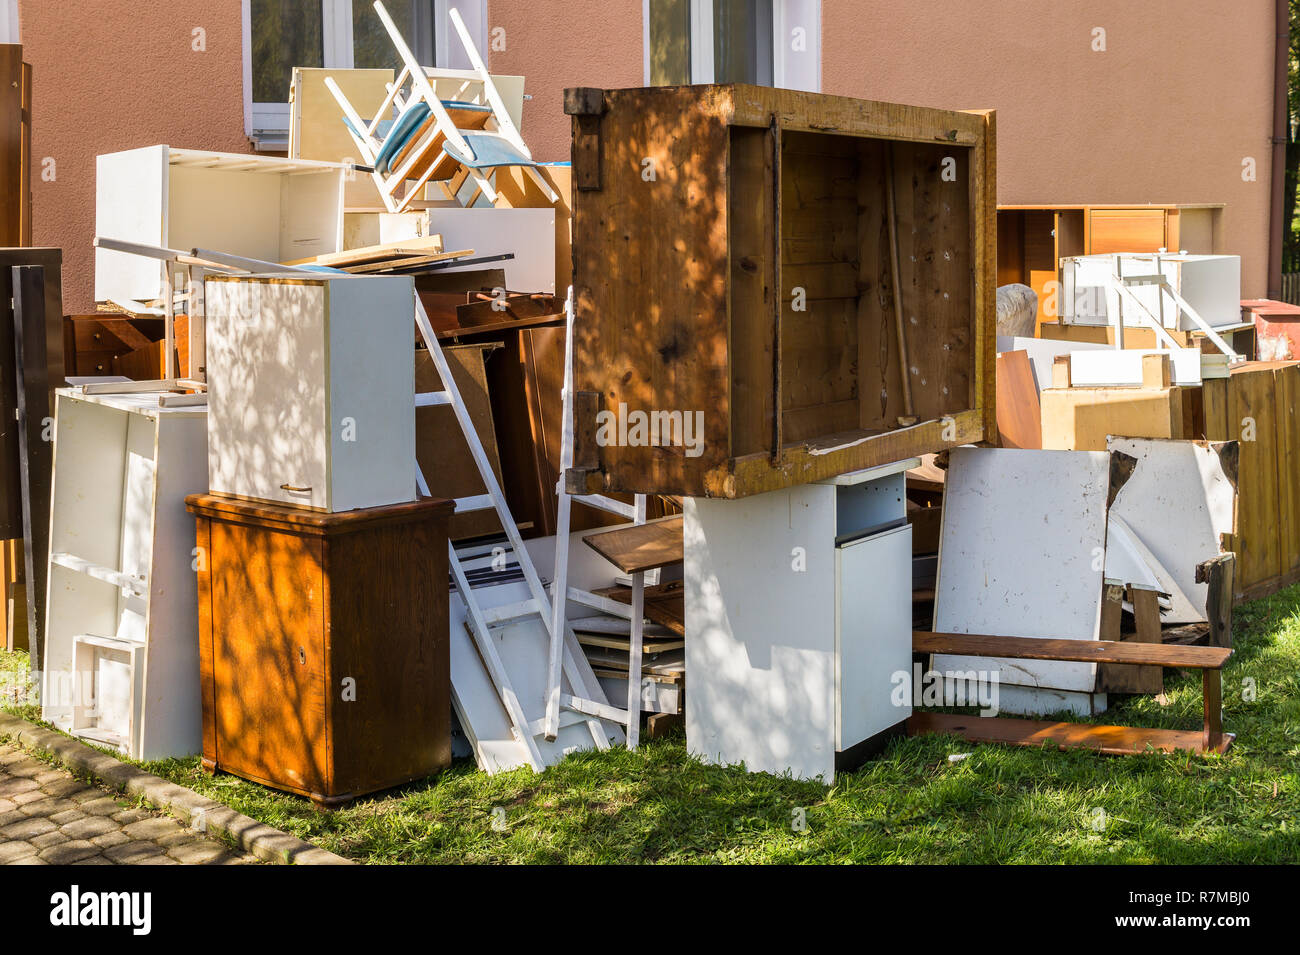 Waste Furniture Stock Photos Waste Furniture Stock Images Alamy